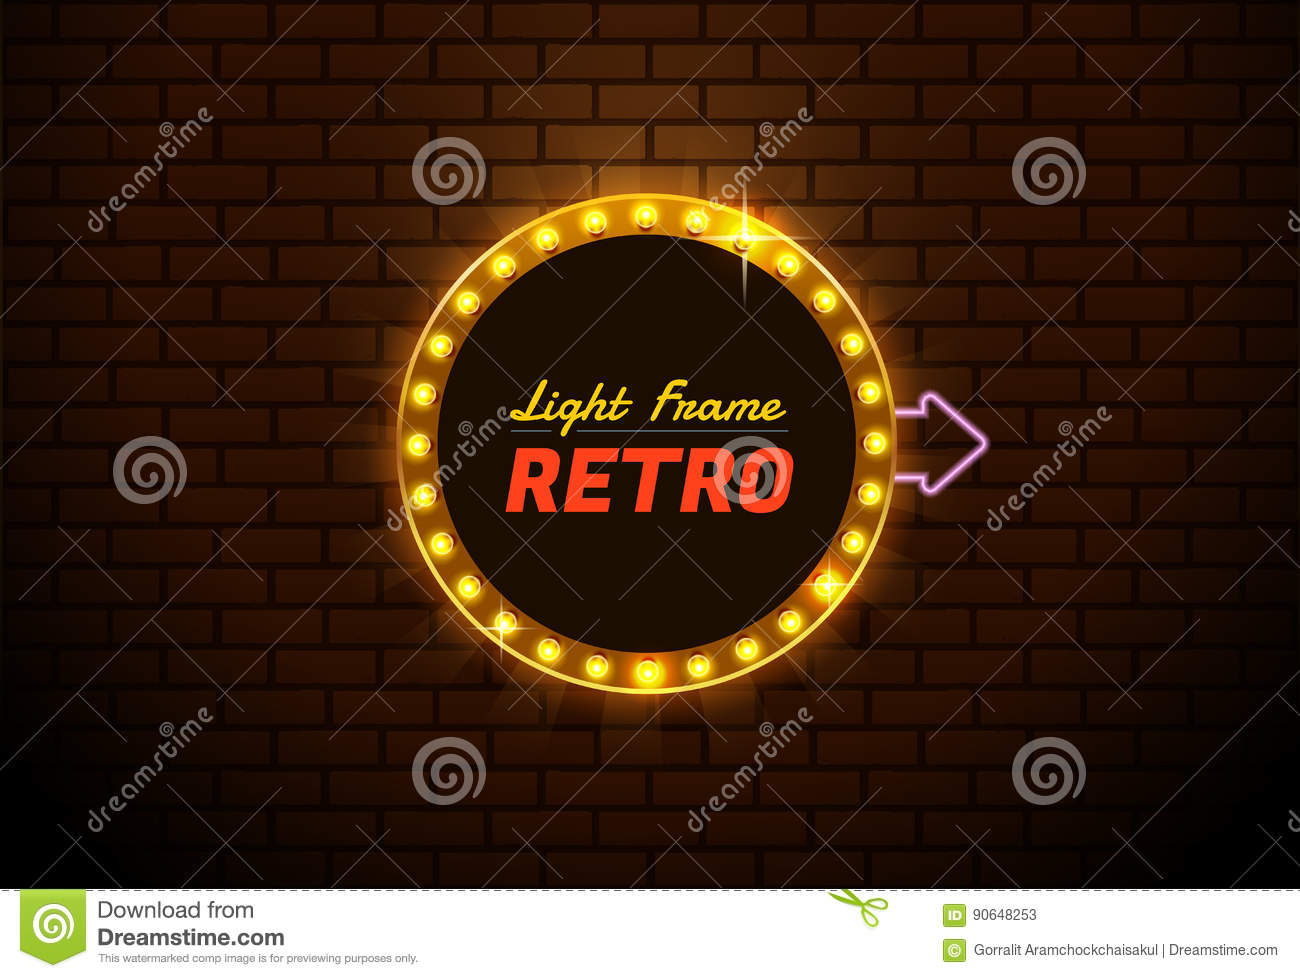 Light Neon Frame Circle Retro Vector Stock Vector Illustration Of